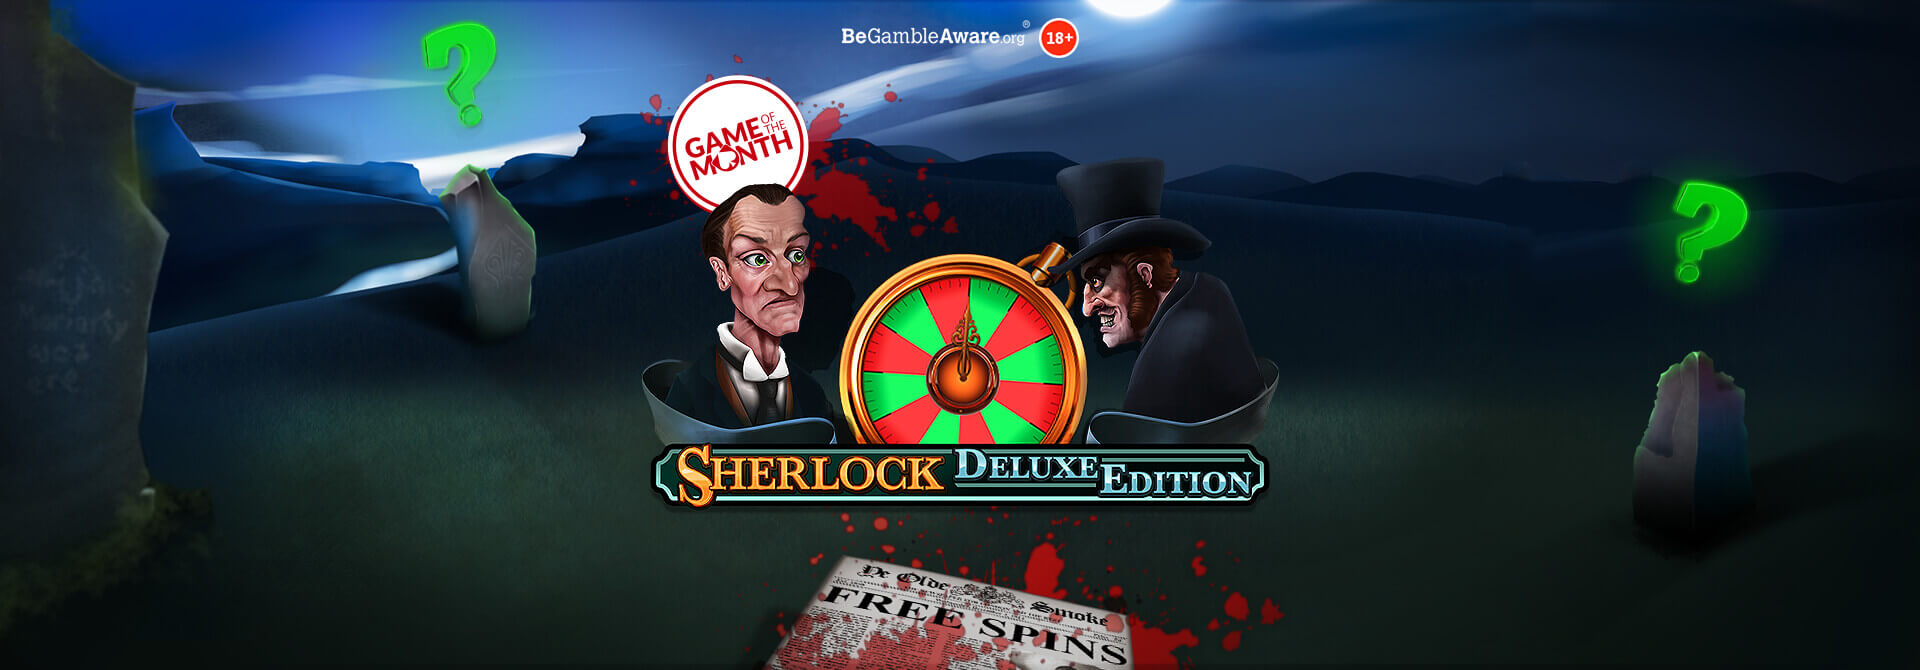 Uncover some mysterious wins in Sherlock Deluxe online slots!